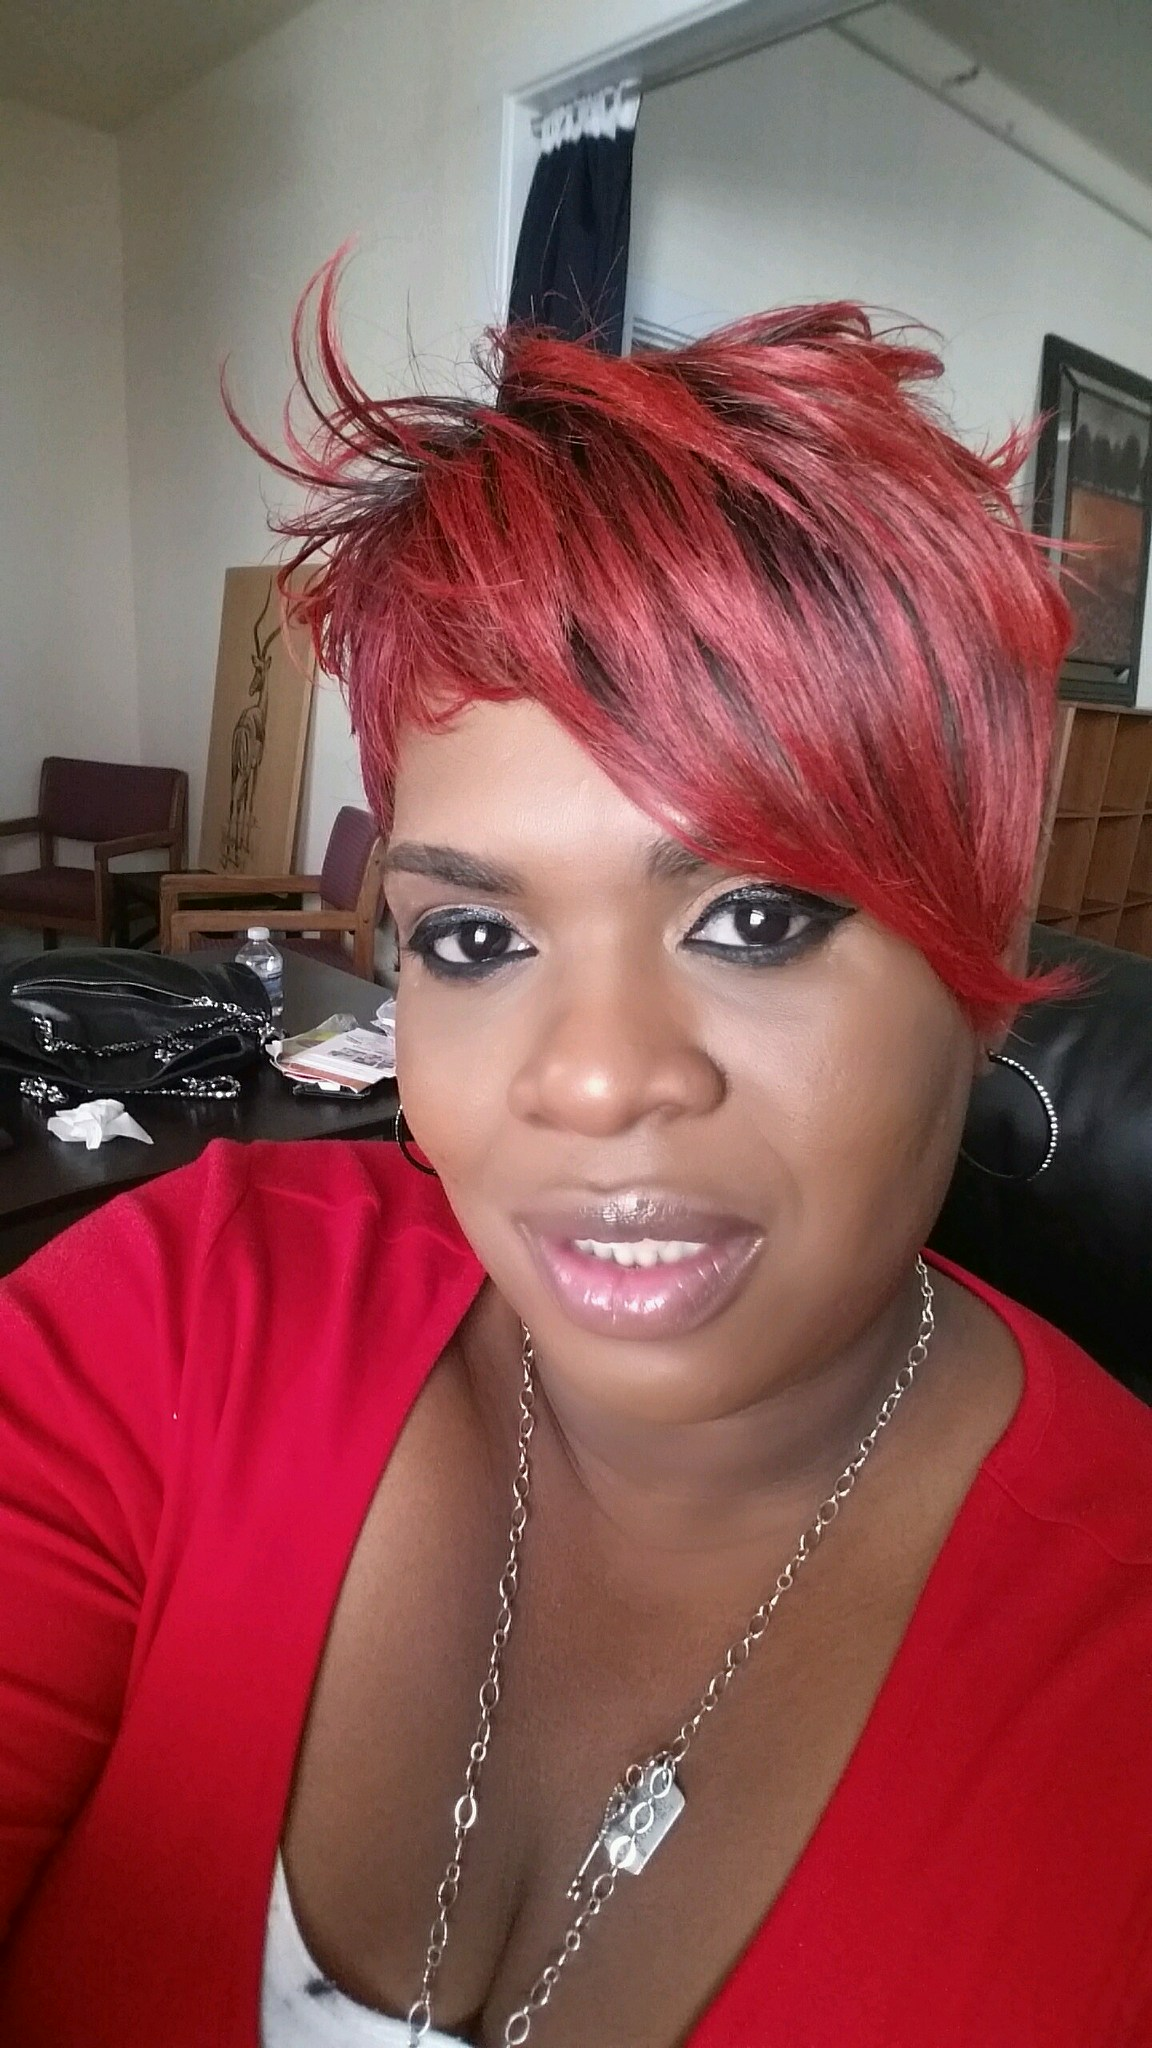 Taliyah Allen    tallen@achurchforall.org    Member at Large - Project & Sub-committee Coordinator  -  responsible for oversight of church calendar, programs and special events sub committees, requests, project budget development and implementation.